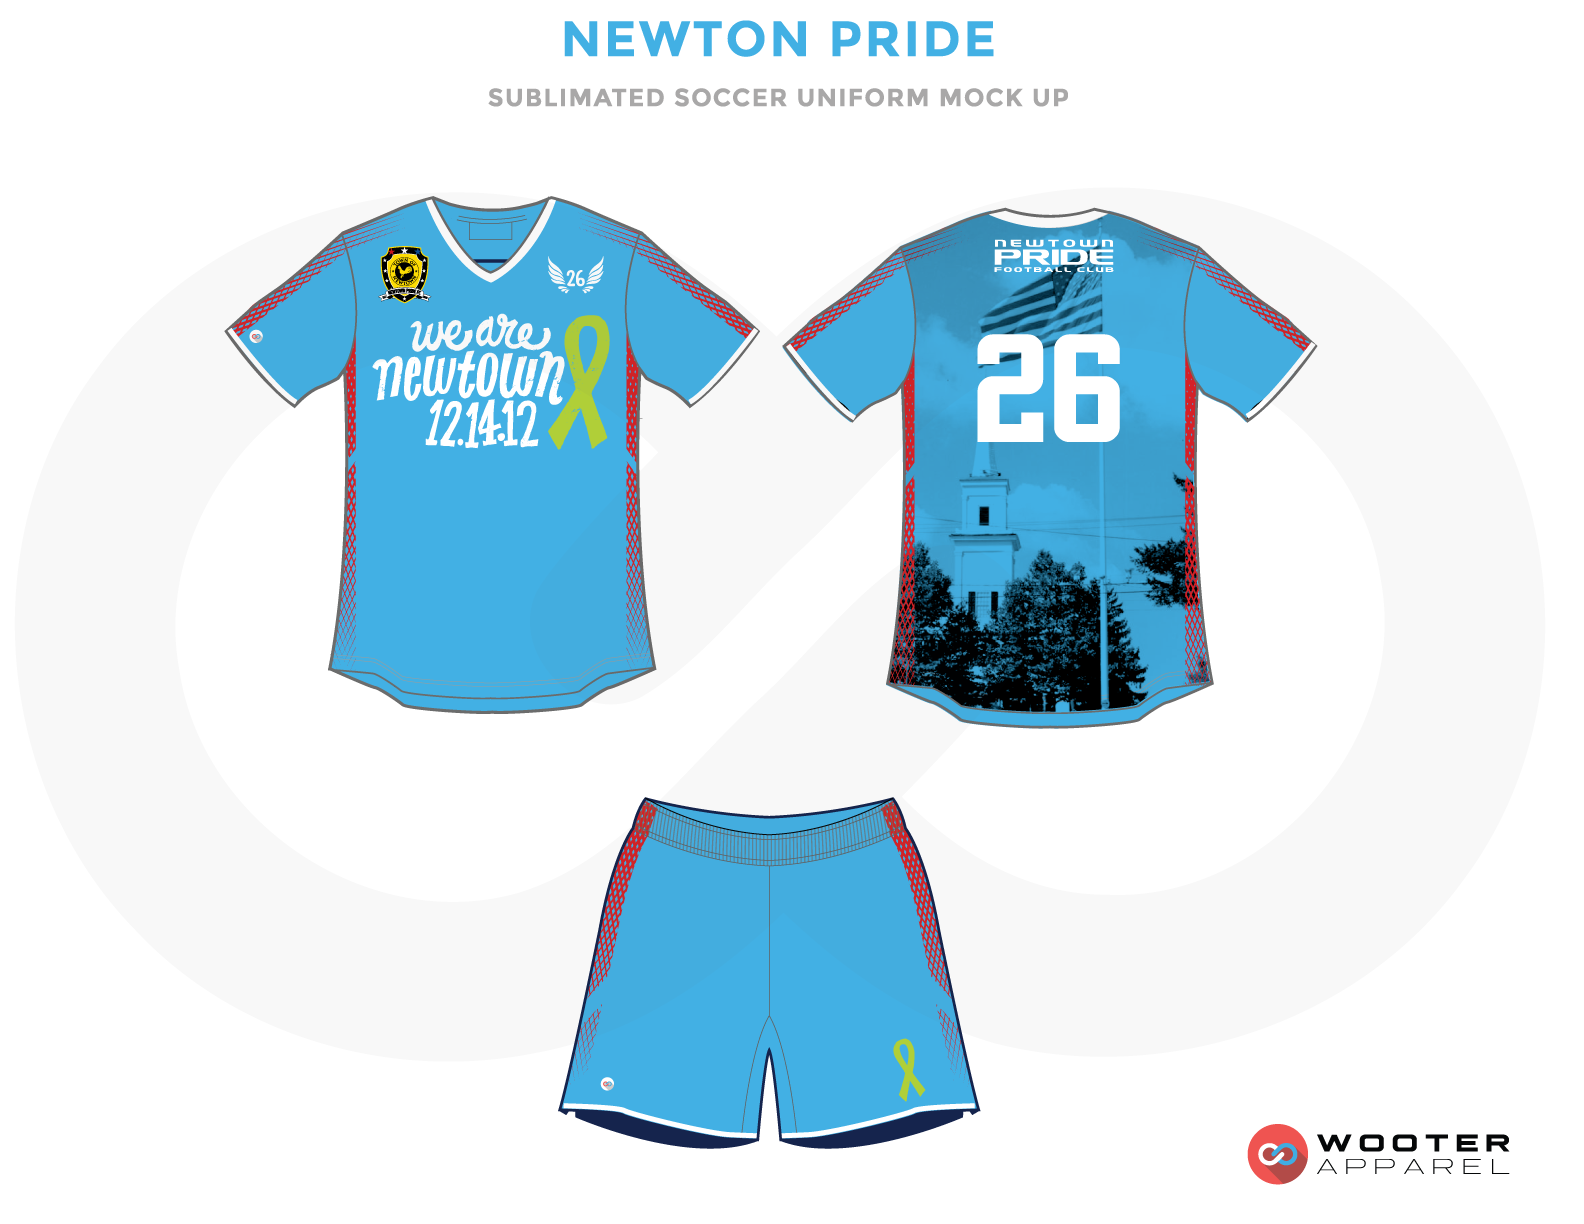 Newton Pride Blue and White Soccer Uniform, Jersey and Shorts